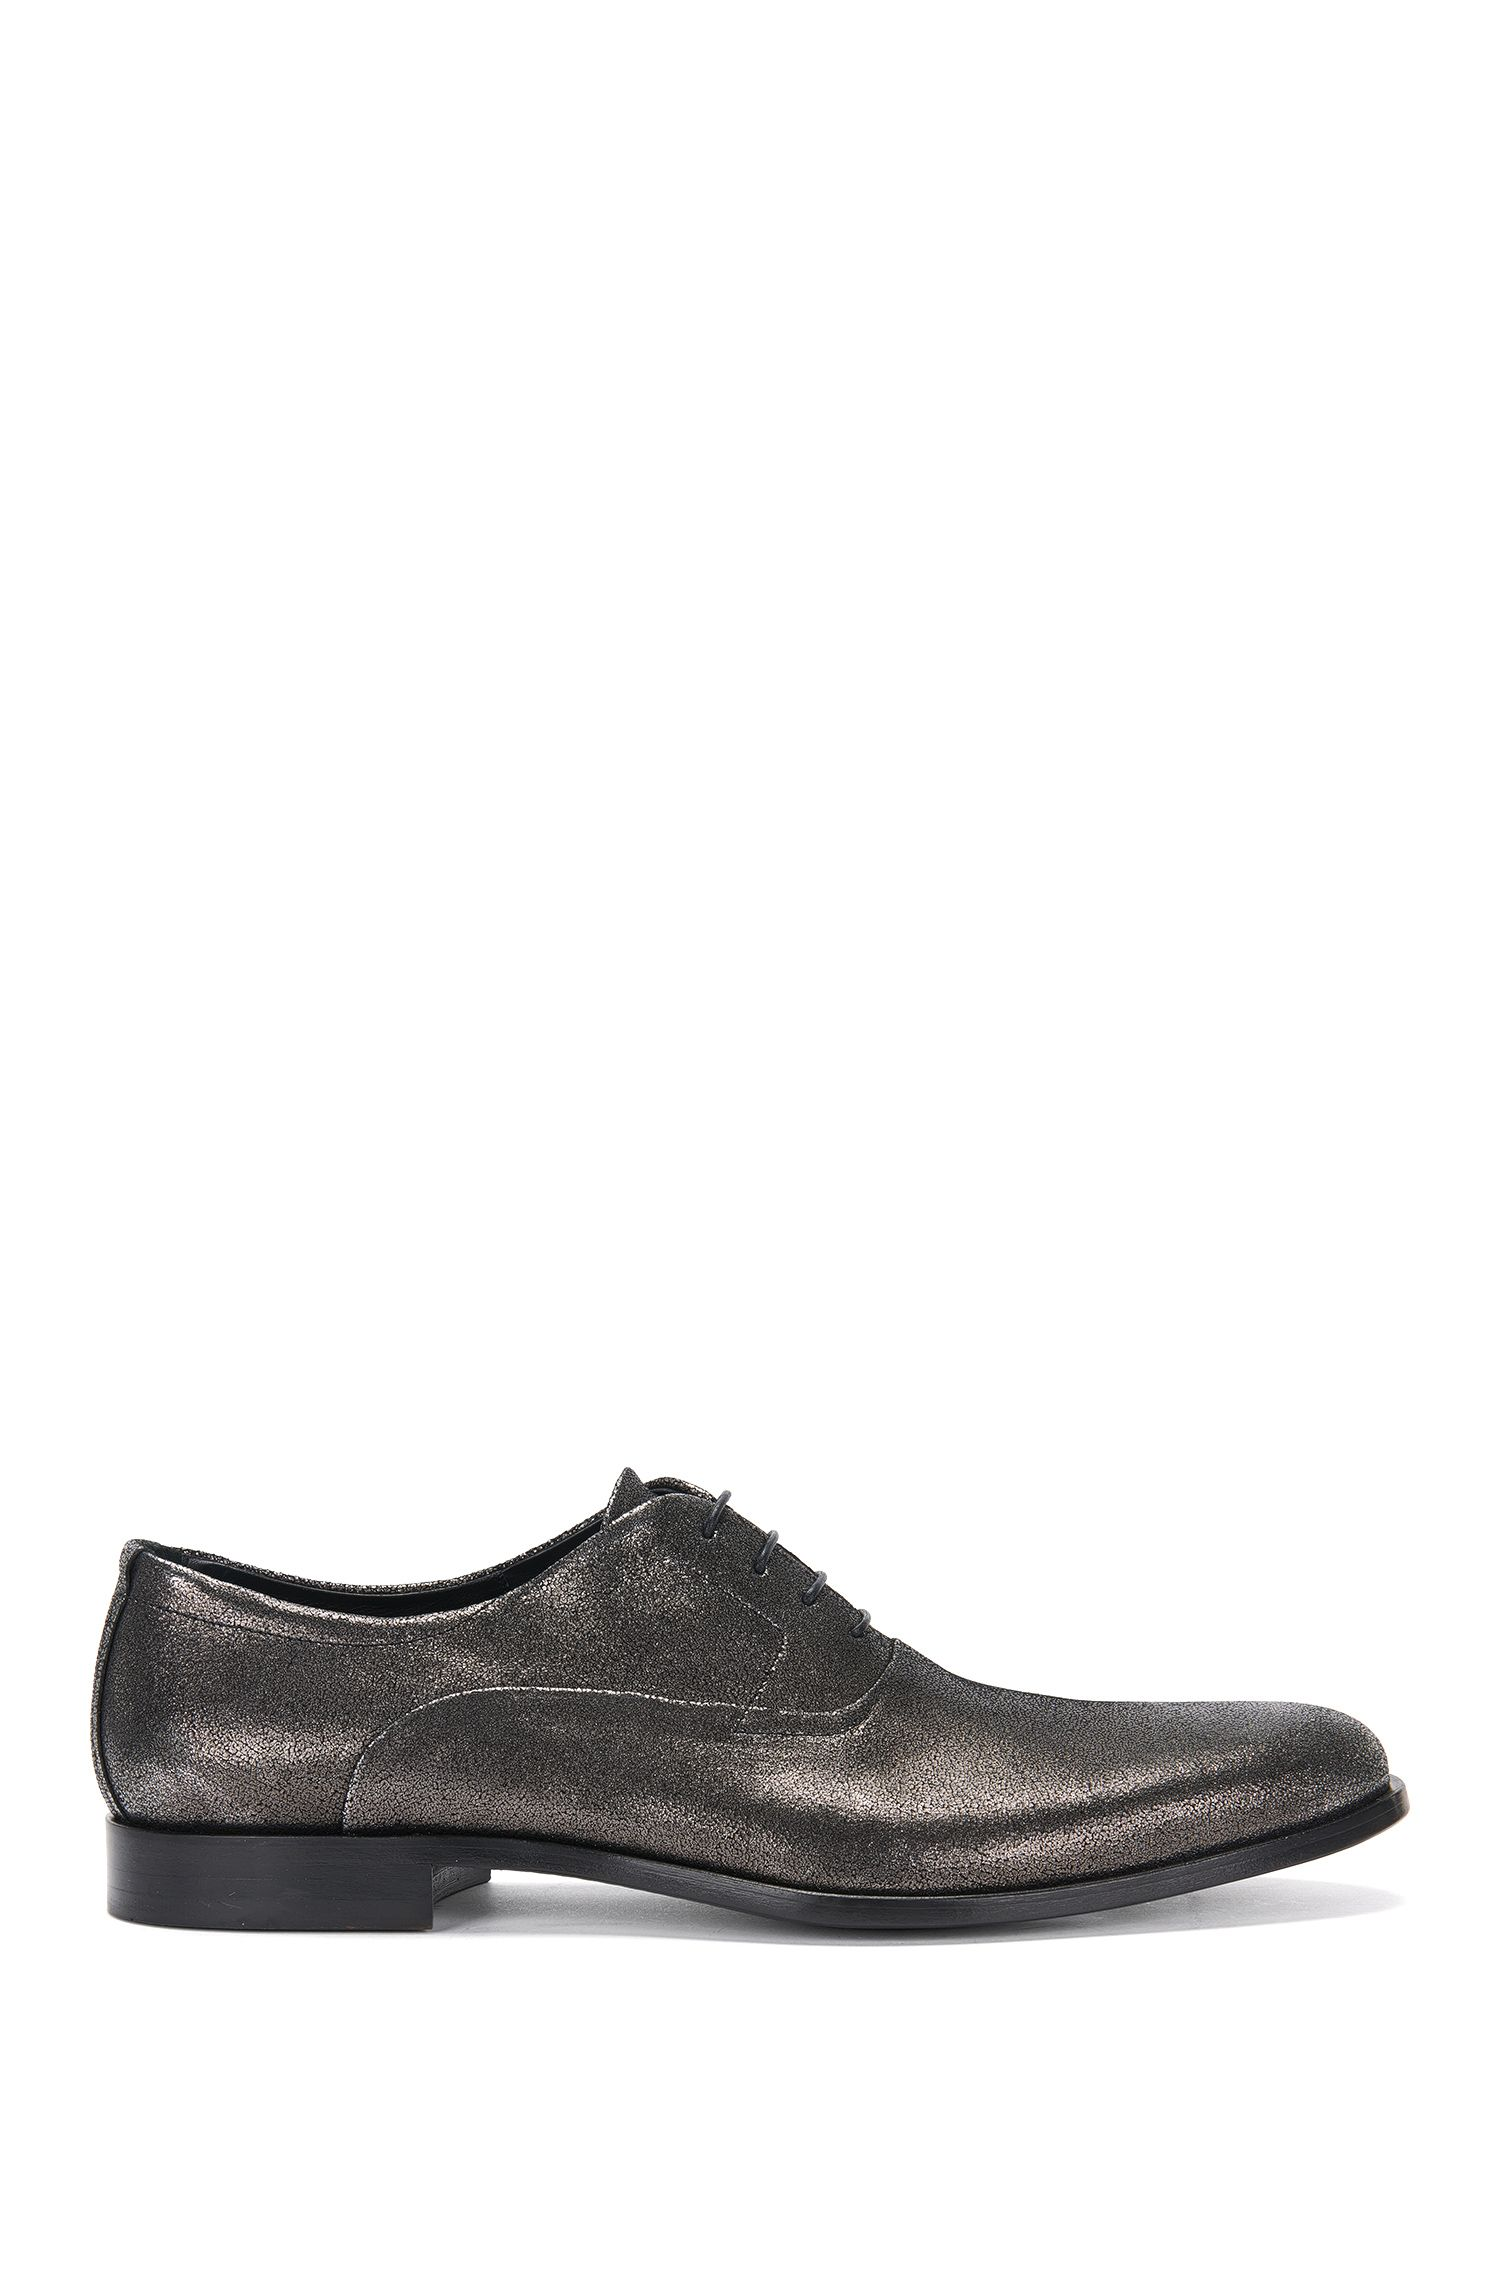 'Sigma Oxfr Sdgl' | Italian Calfskin Suede Metallic Oxford Shoes